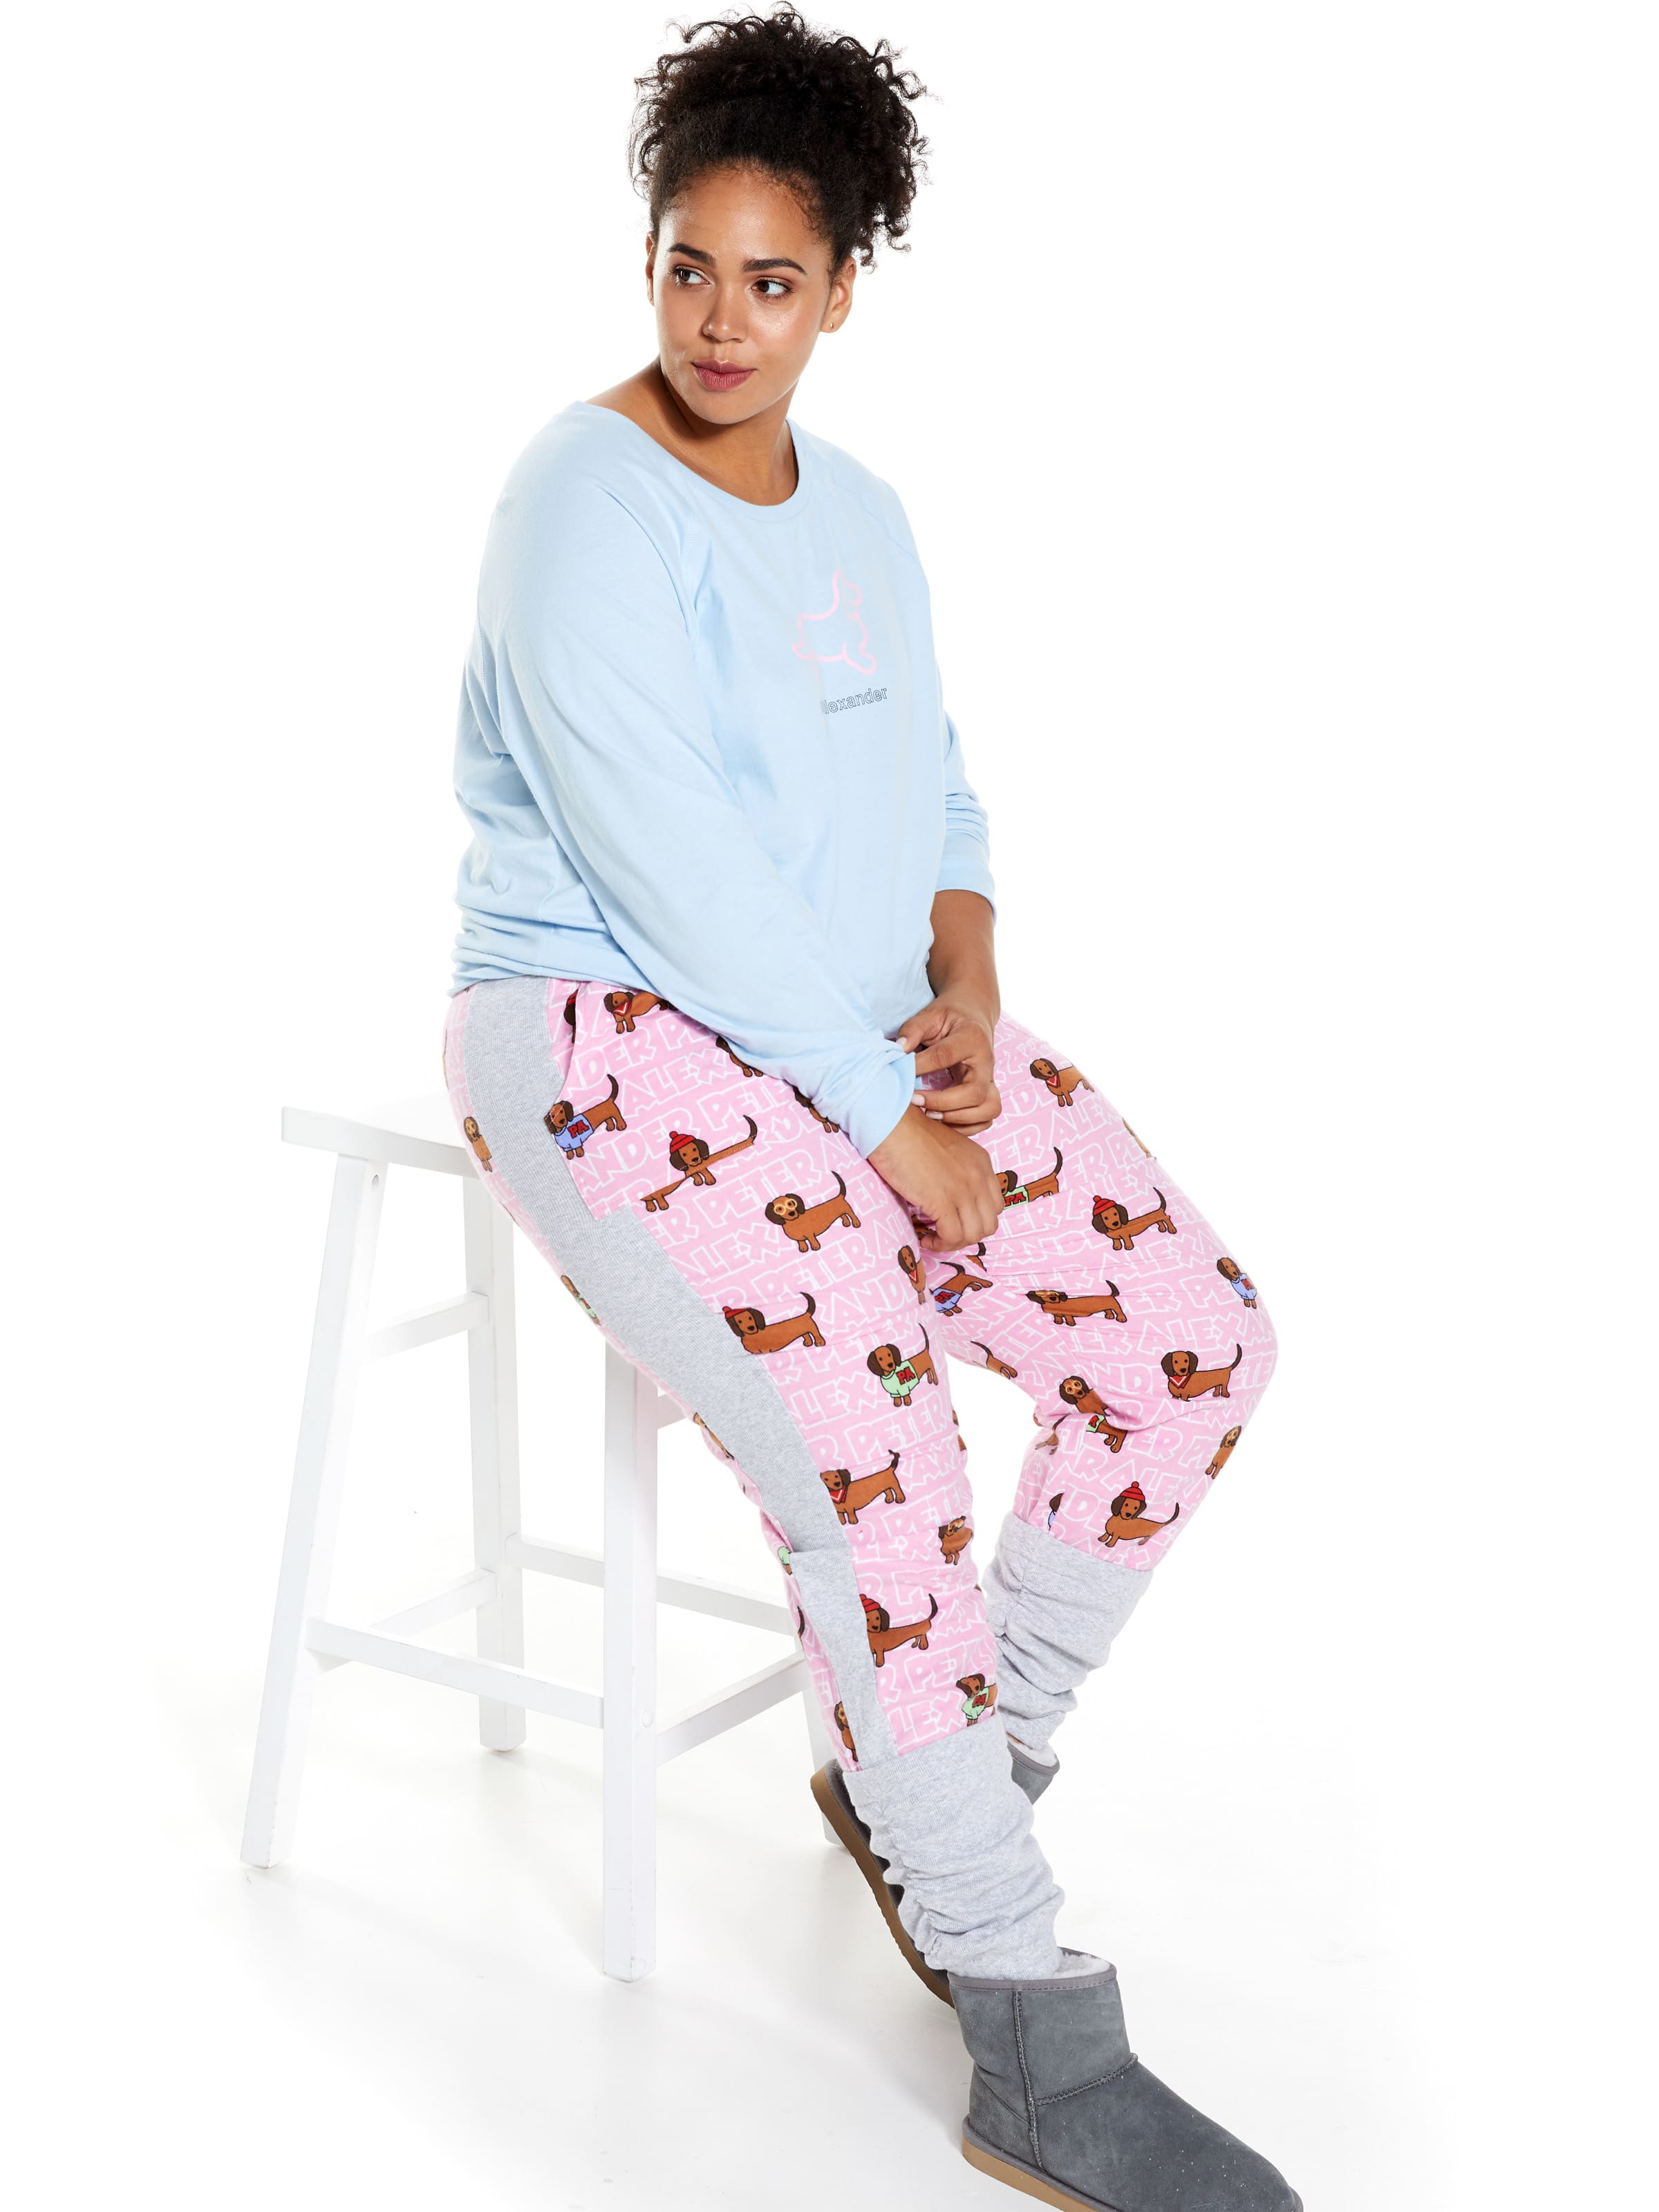 115bc37cfd0f0 ... Image for P.A. Plus Pink Penny Dog Flannelette Legwarmer Pj Pant from  Peter Alexander ...